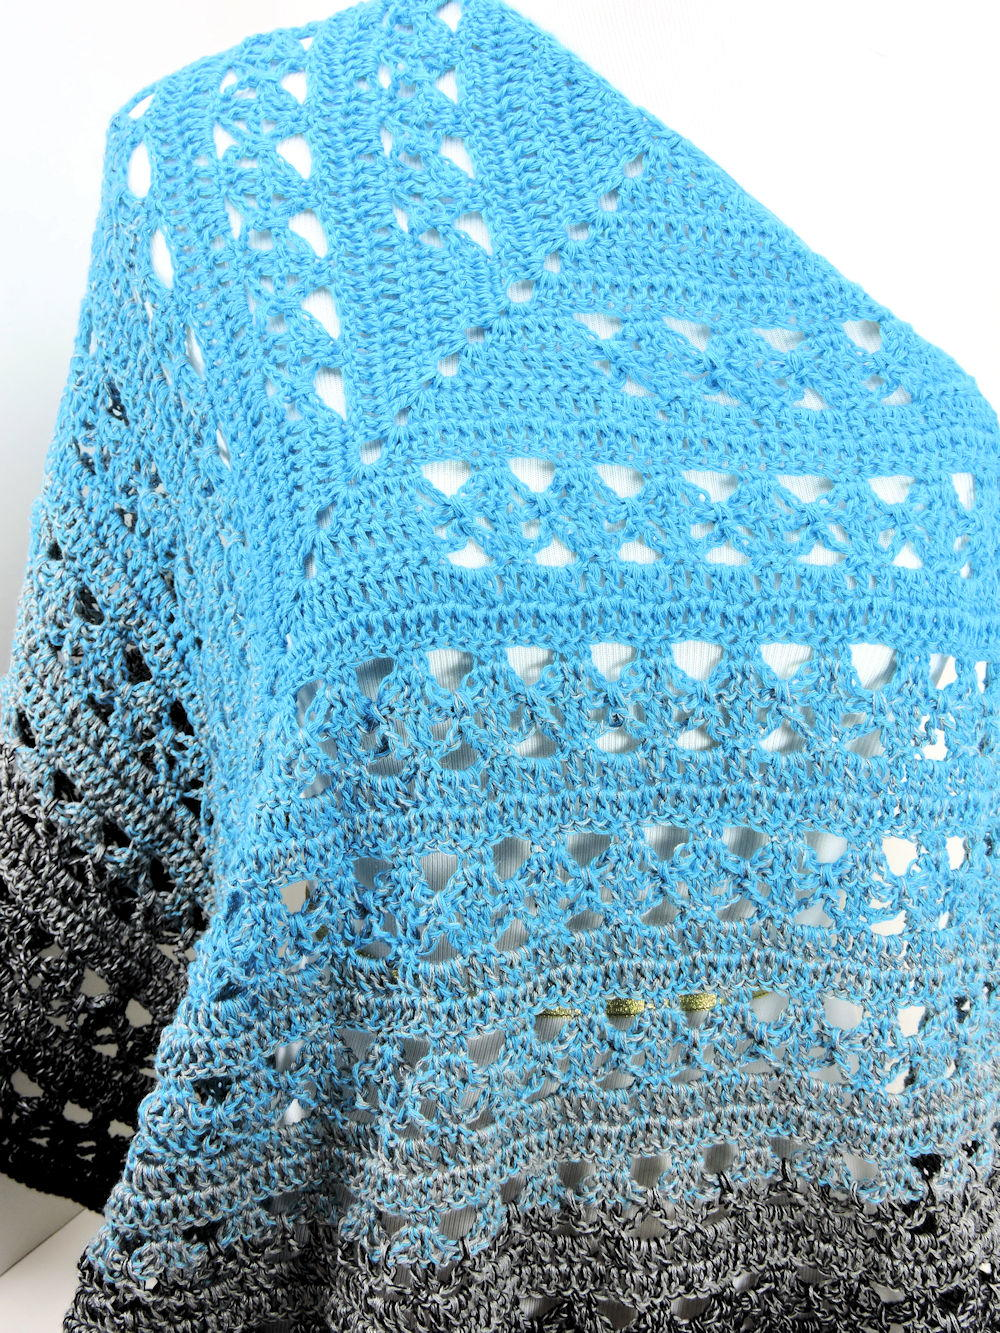 Lunar Crossings Shawl Allfreecrochet Com